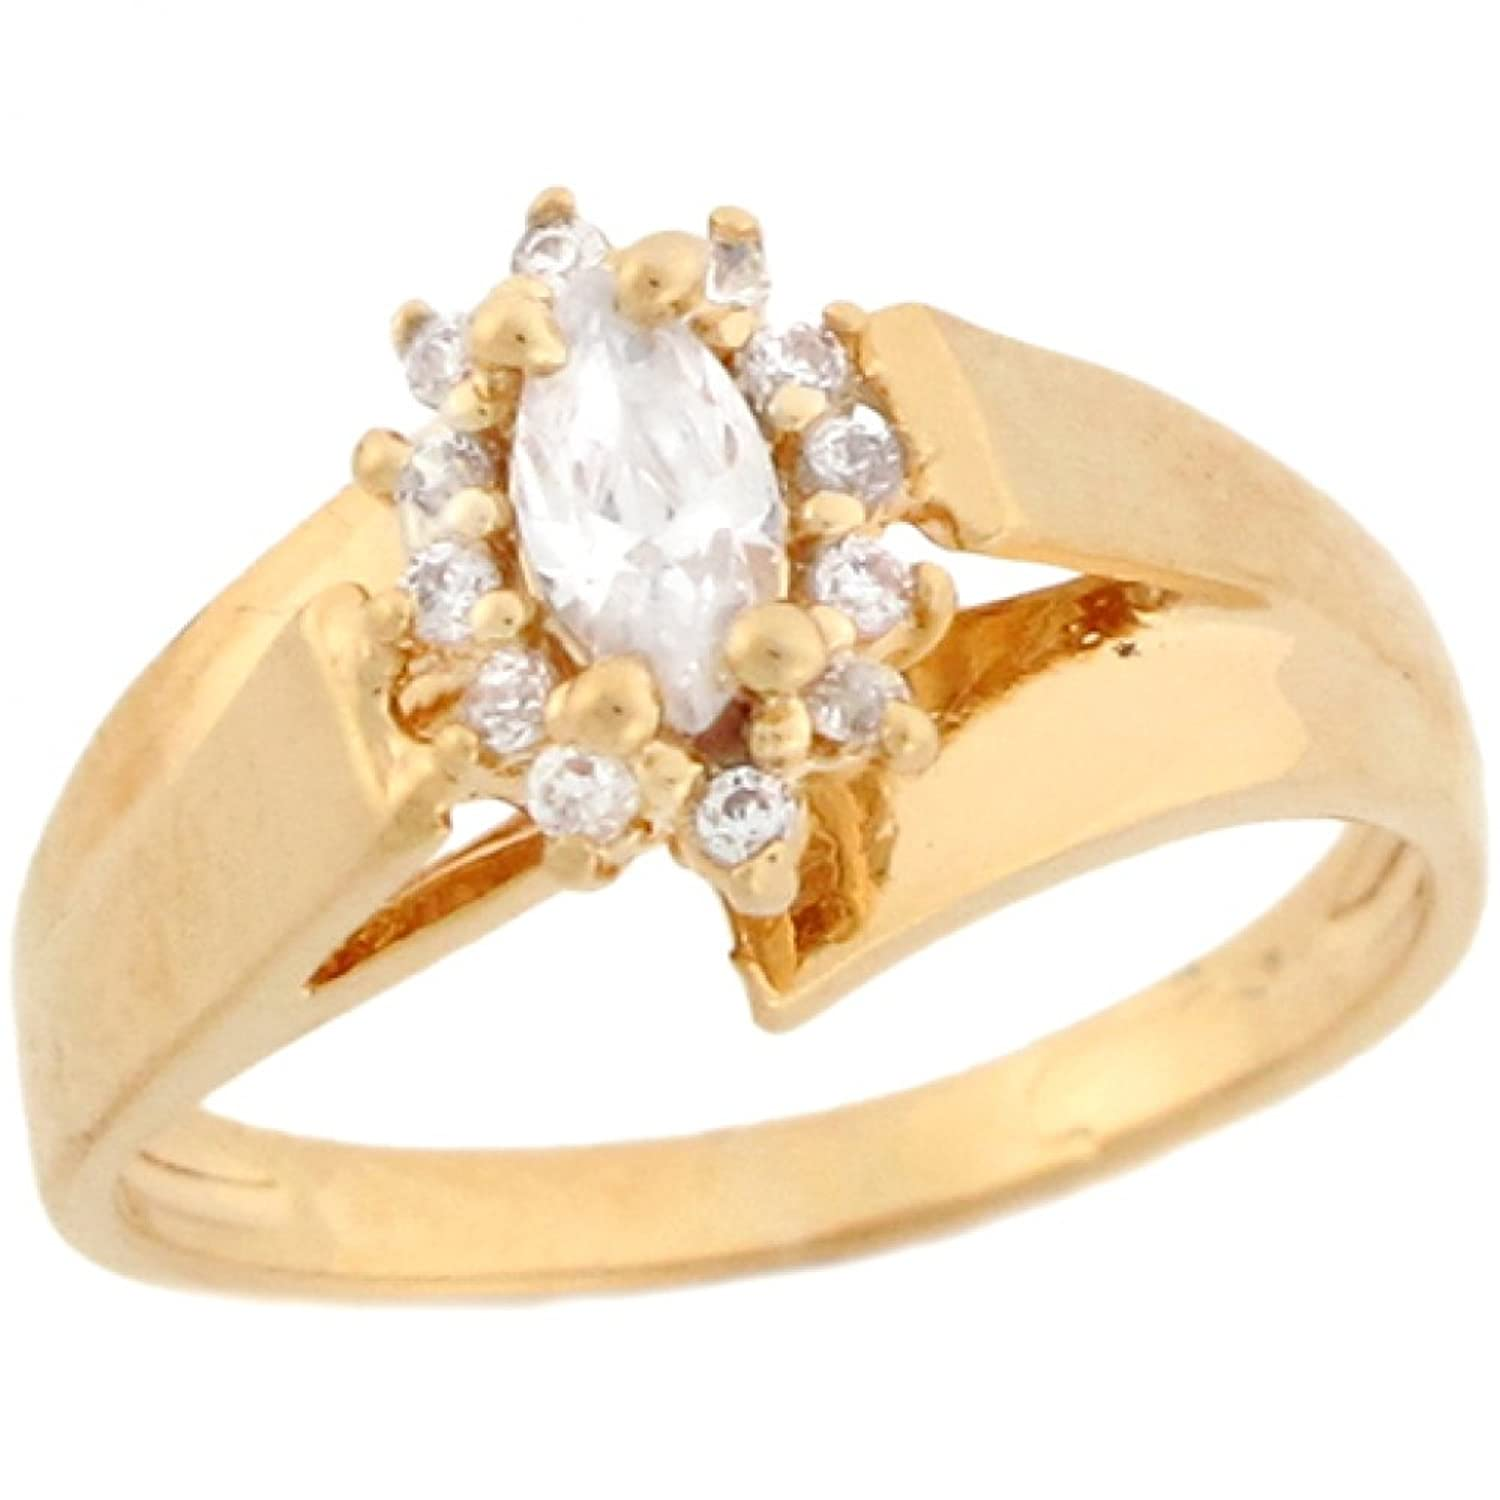 10k Yellow Gold White CZ Floral Cluster Petite Ladies Ring